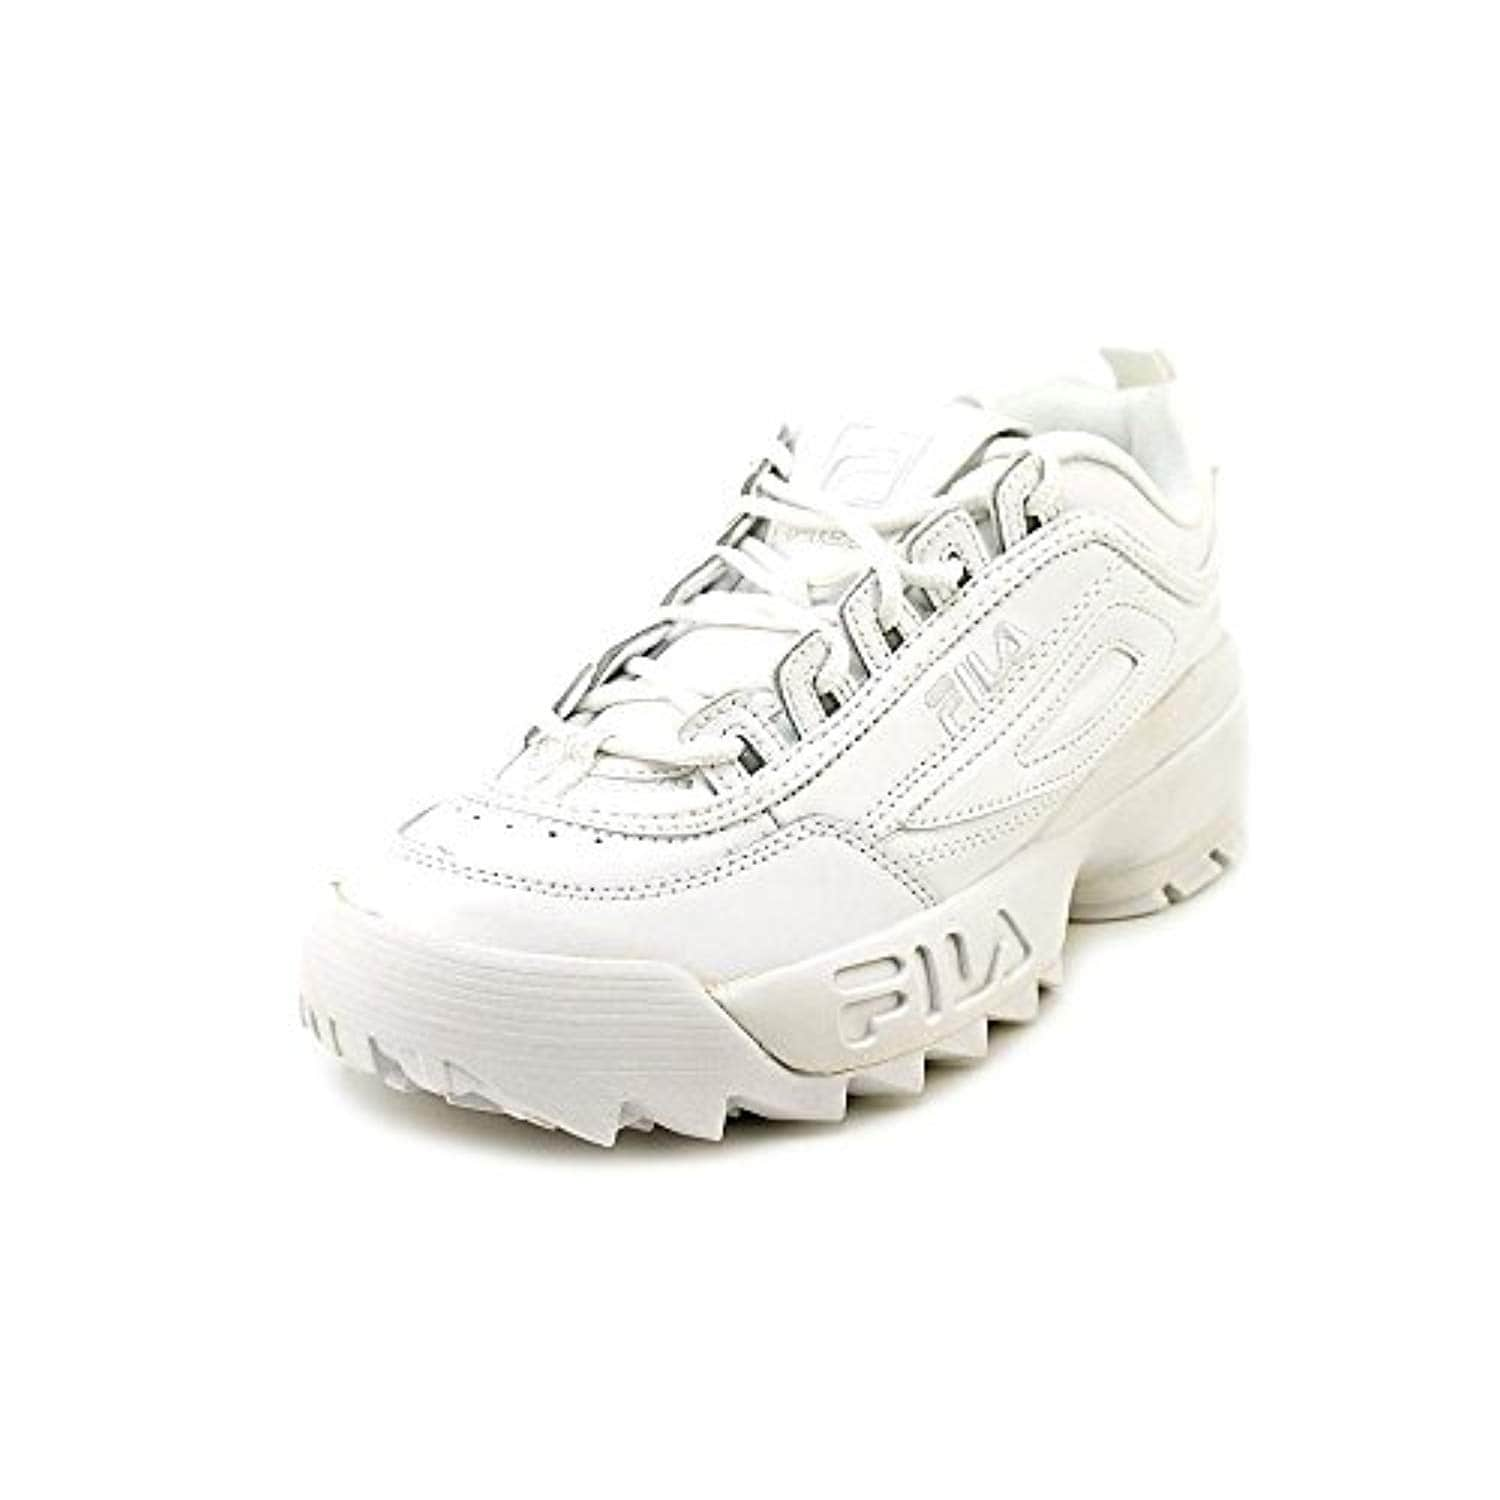 Fila Shoes | Shop our Best Clothing & Shoes Deals Online at